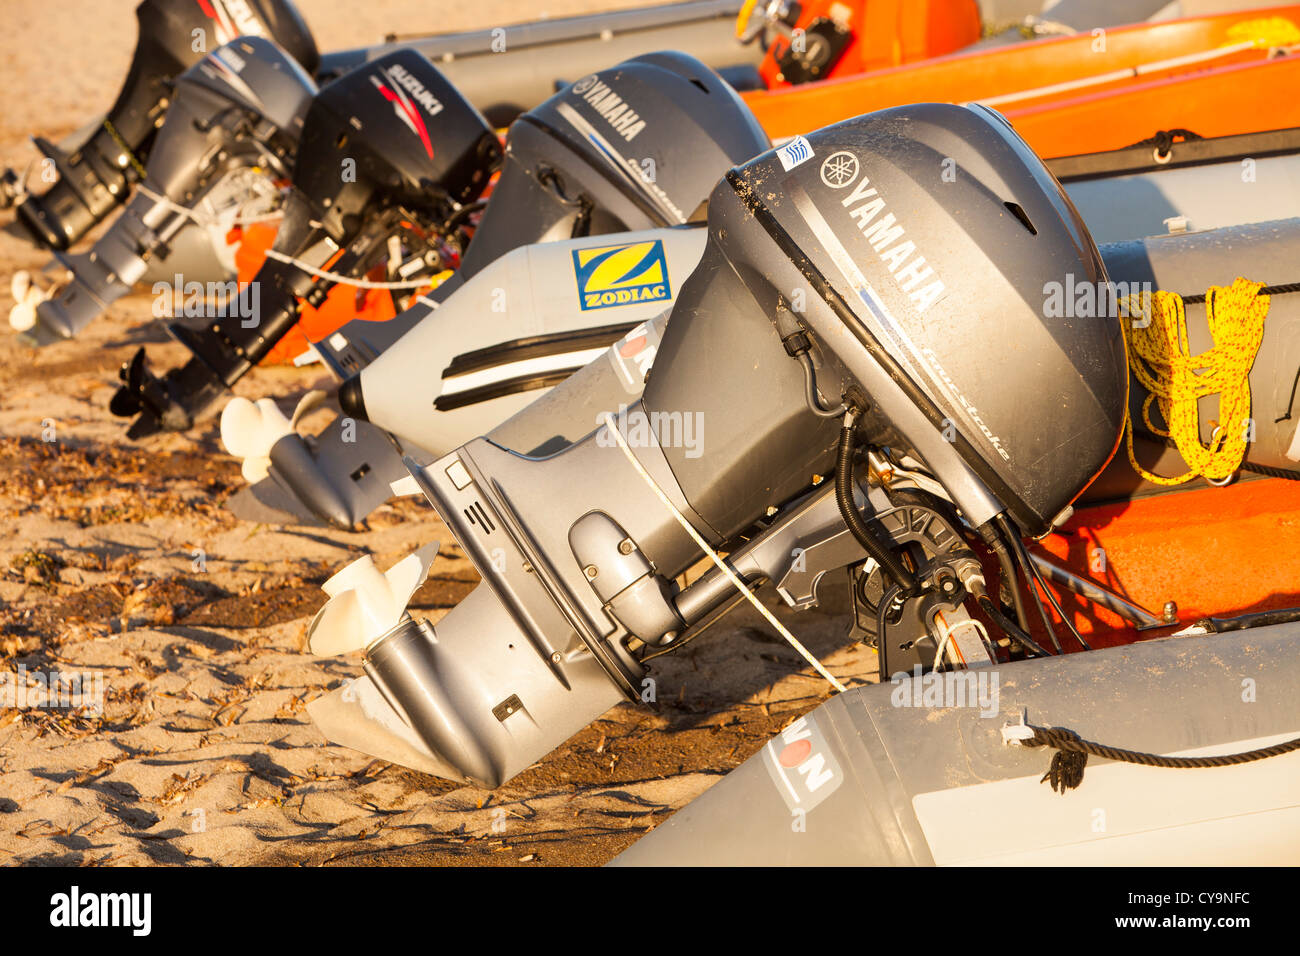 Outboard motors on safety boats on a beach on Lemnos, Greece. - Stock Image